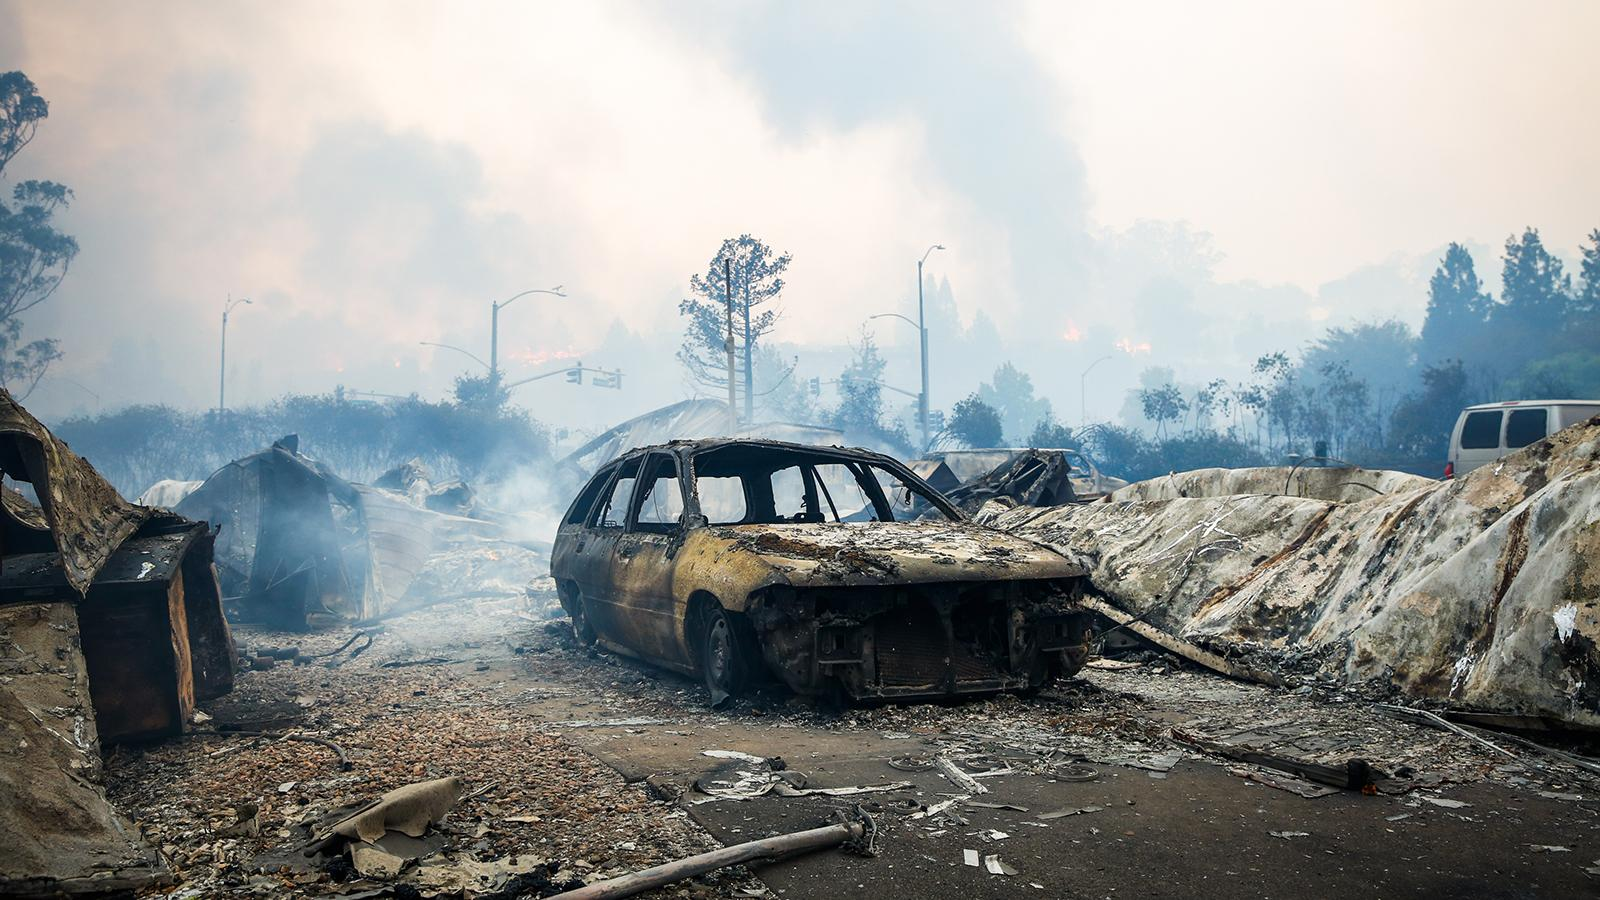 The California wildfires have devastated the Sonoma County town of Santa Rosa.